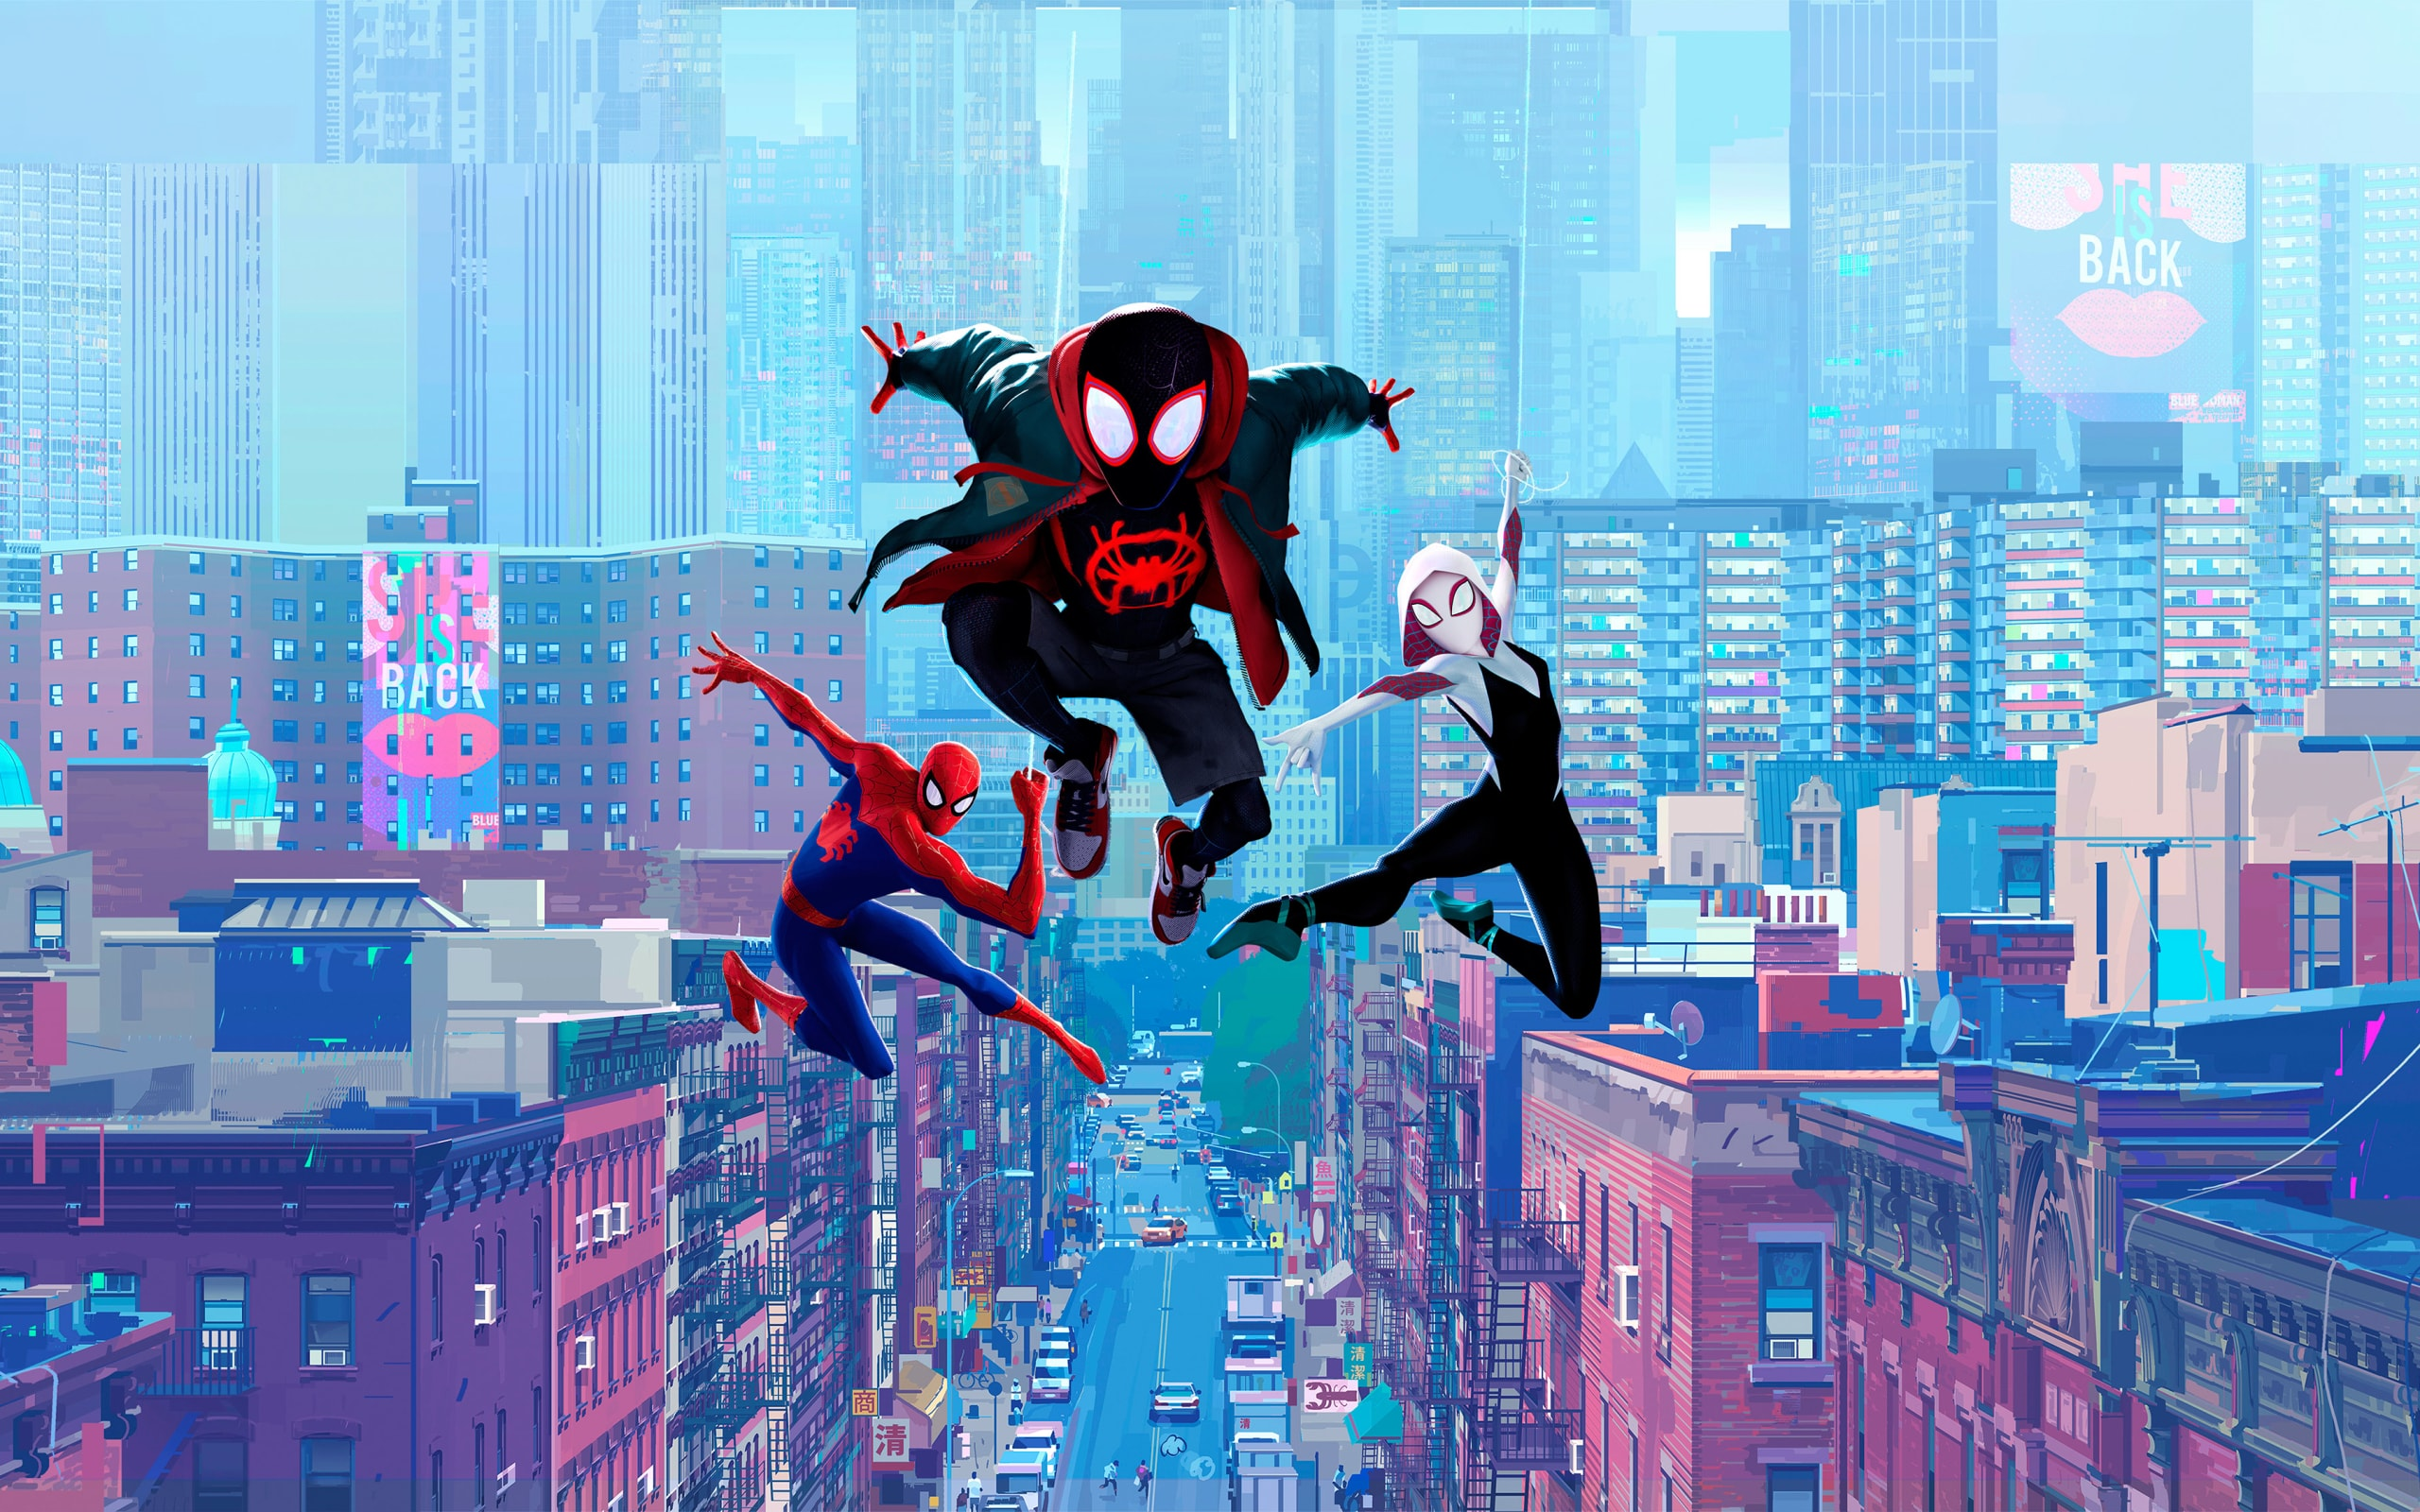 Wallpaper Of Spider Man Spider Man Into The Spider Verse